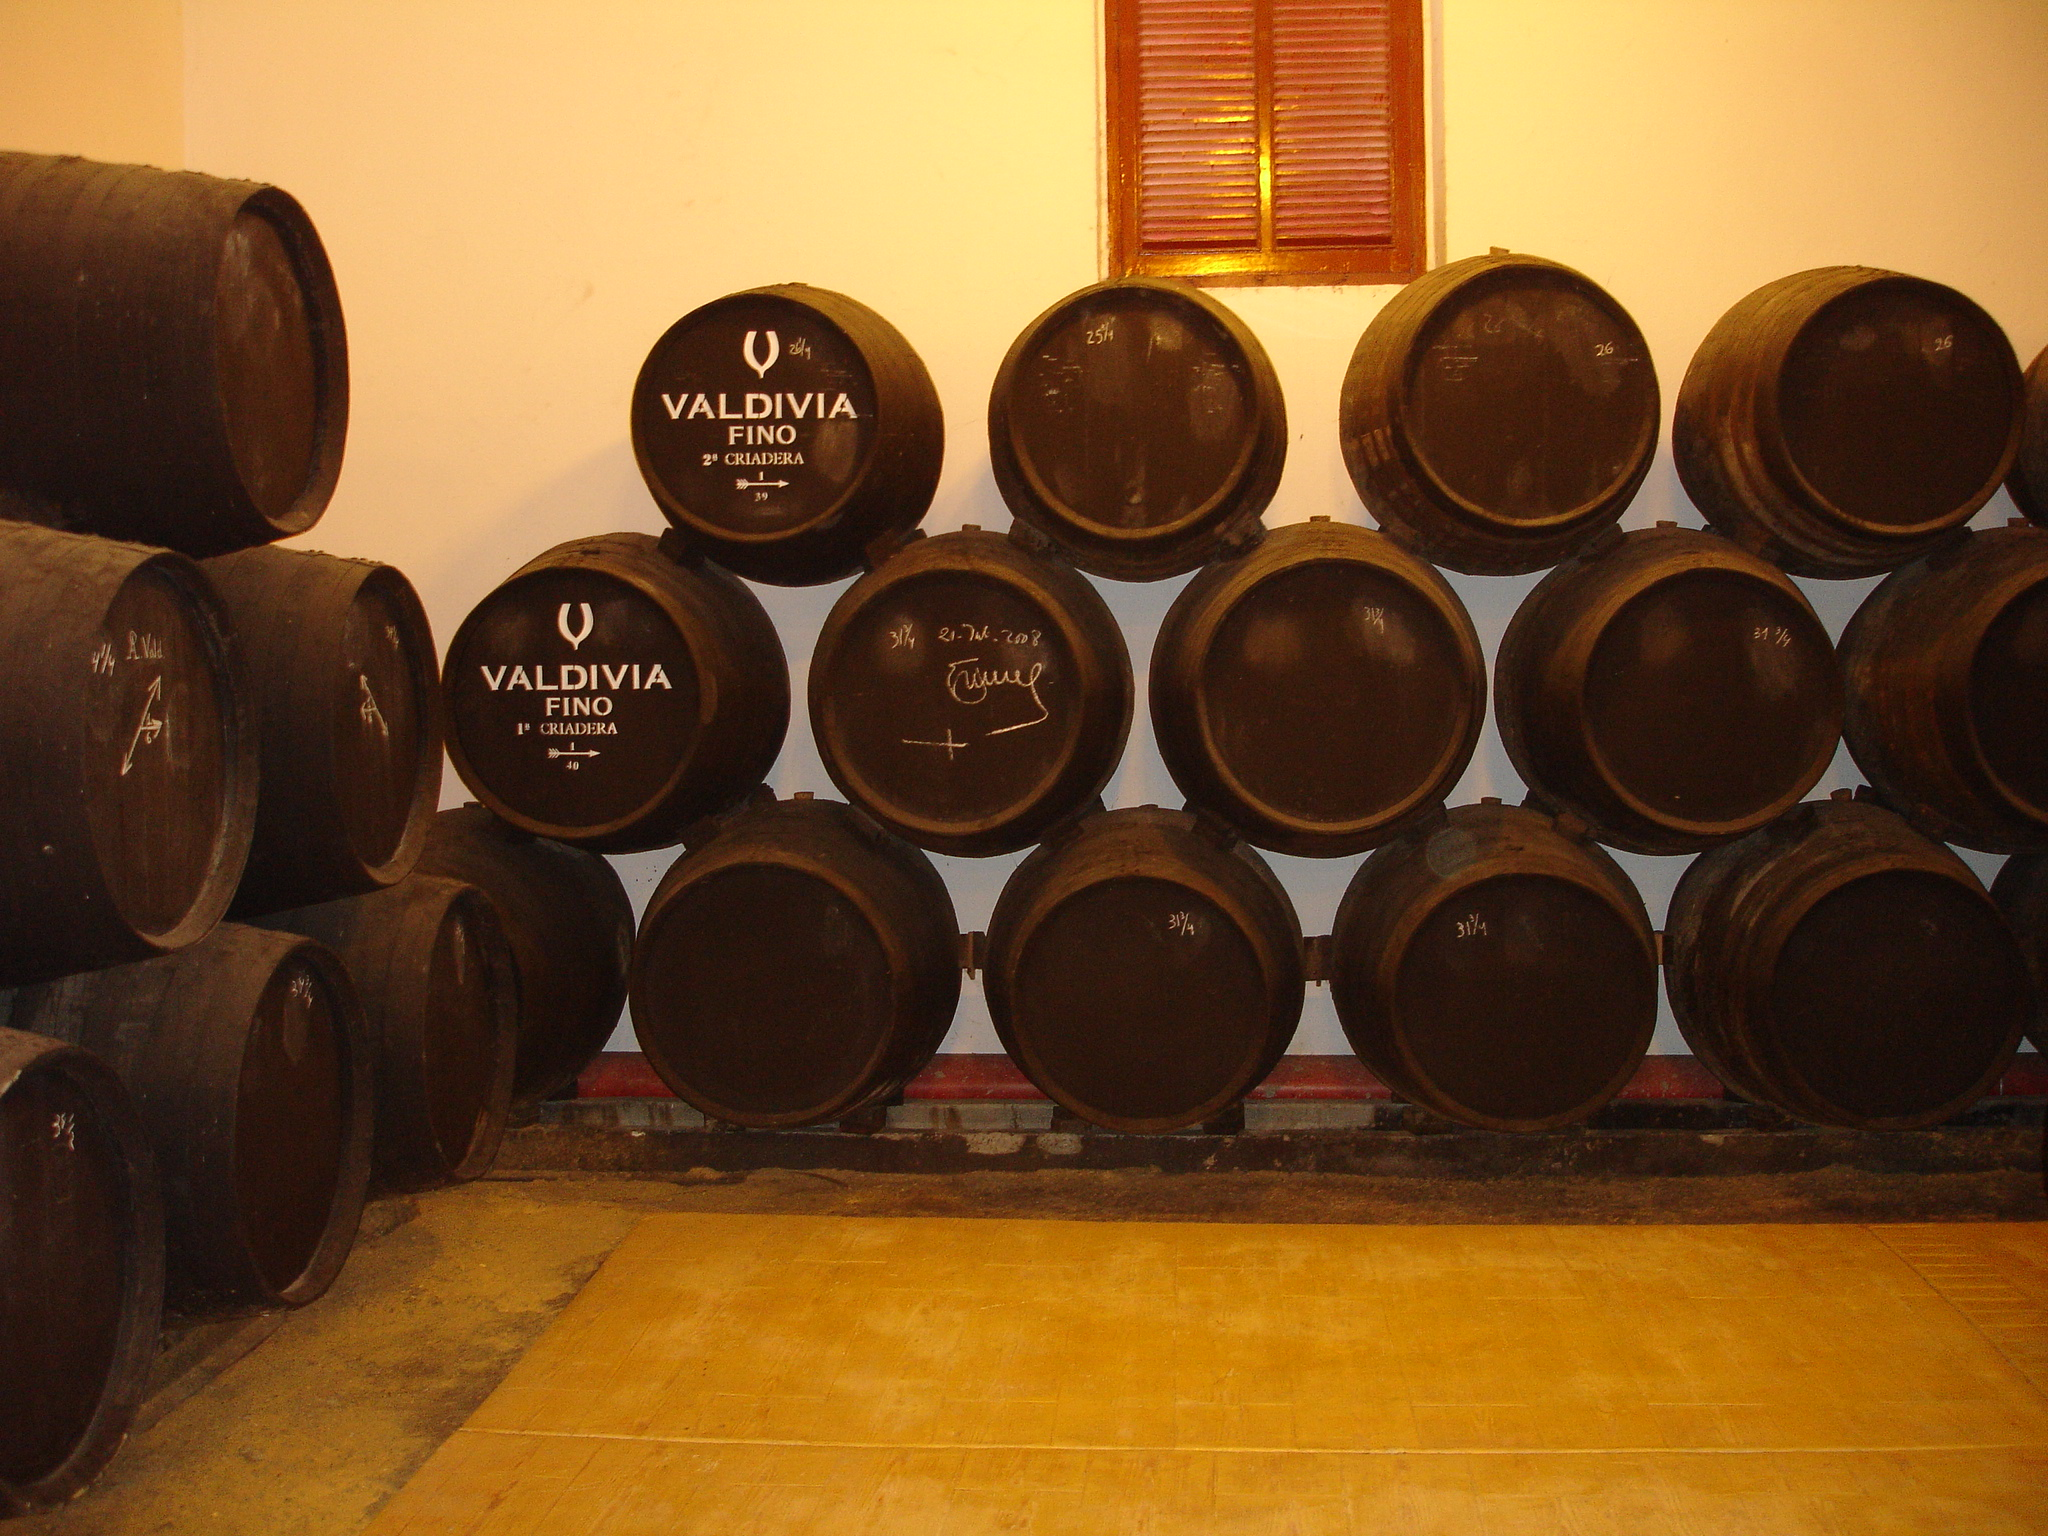 A Solera of Sherry wine casks. Image via Wikimedia Commons. https://en.wikipedia.org/wiki/File:ValdiviaJerez52.jpg